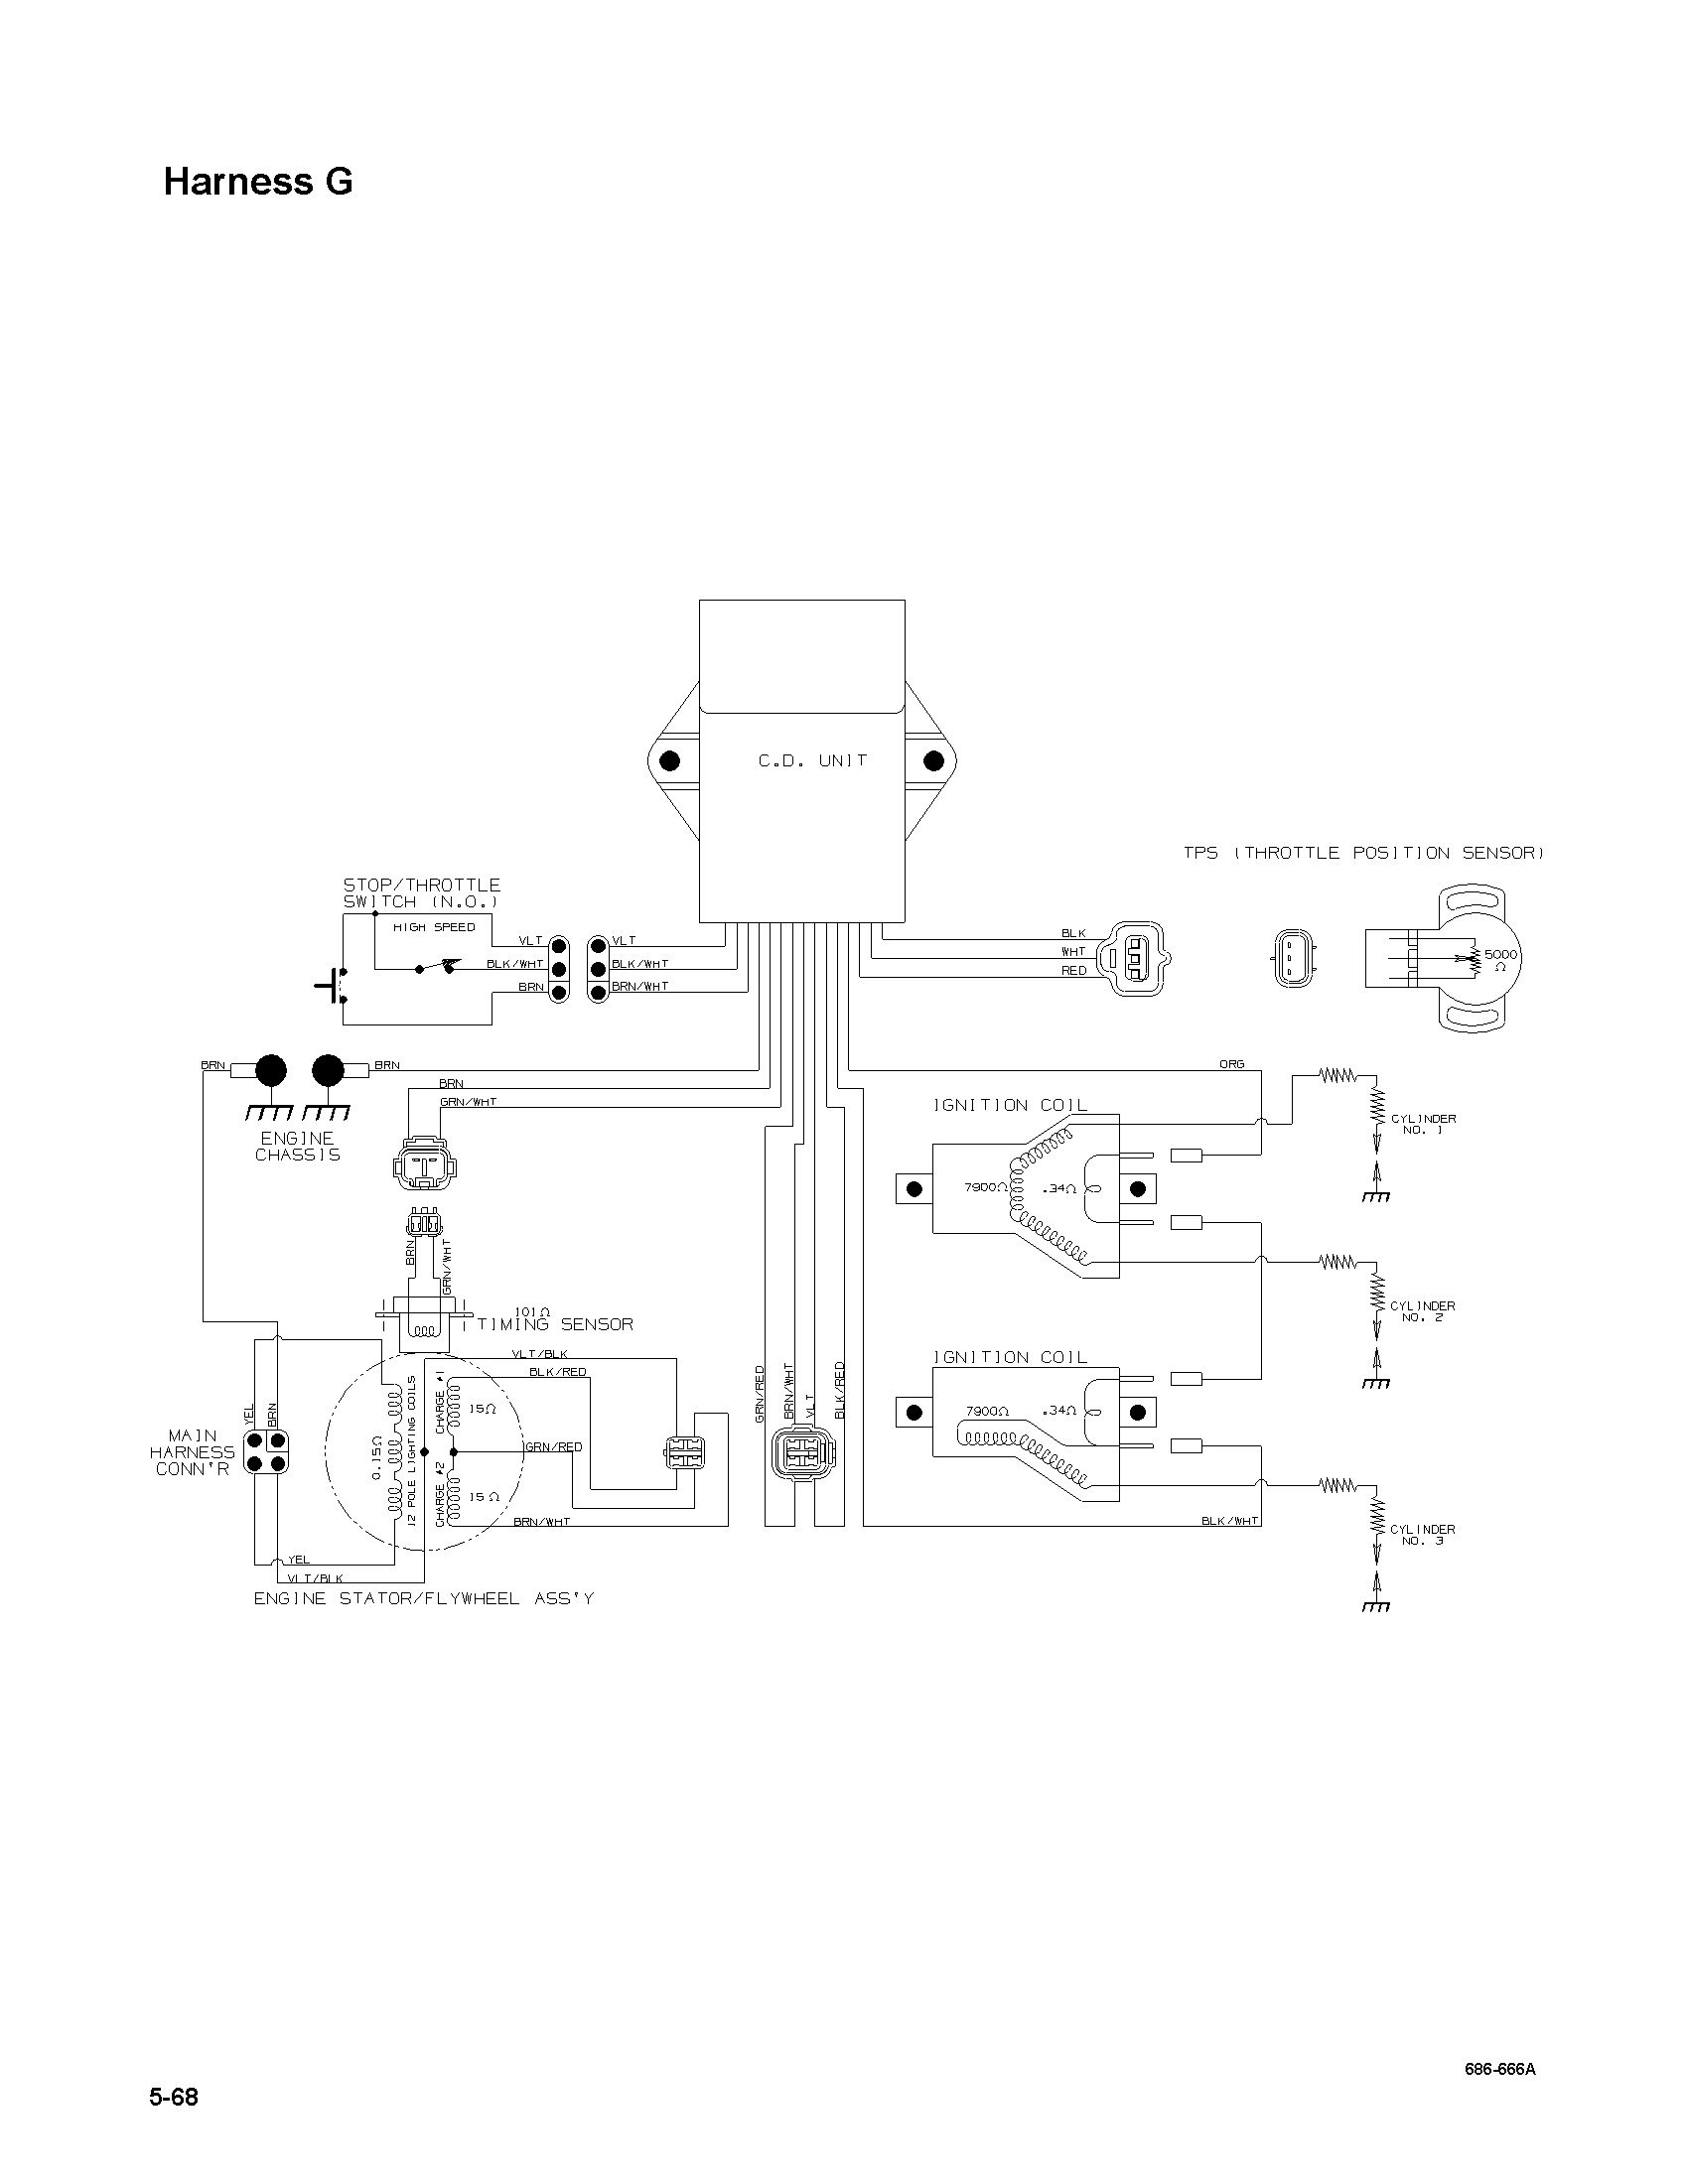 arctic cat 440 snowmobile wiring diagrams wiring diagram loadarctic cat z 440 wiring diagram wiring diagram [ 1700 x 2200 Pixel ]